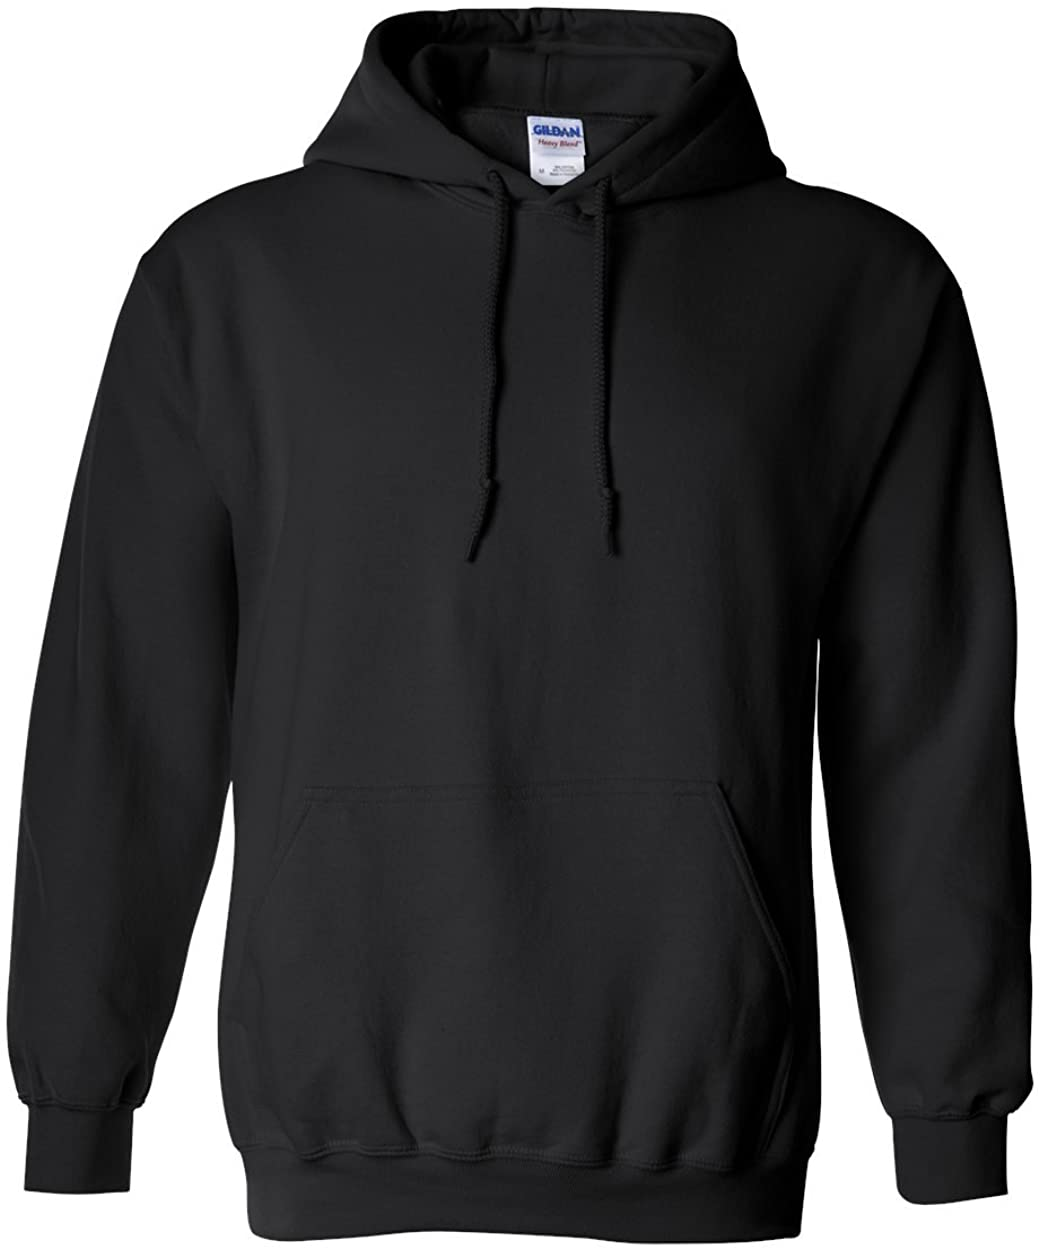 Basic Hooded Sweatshirt